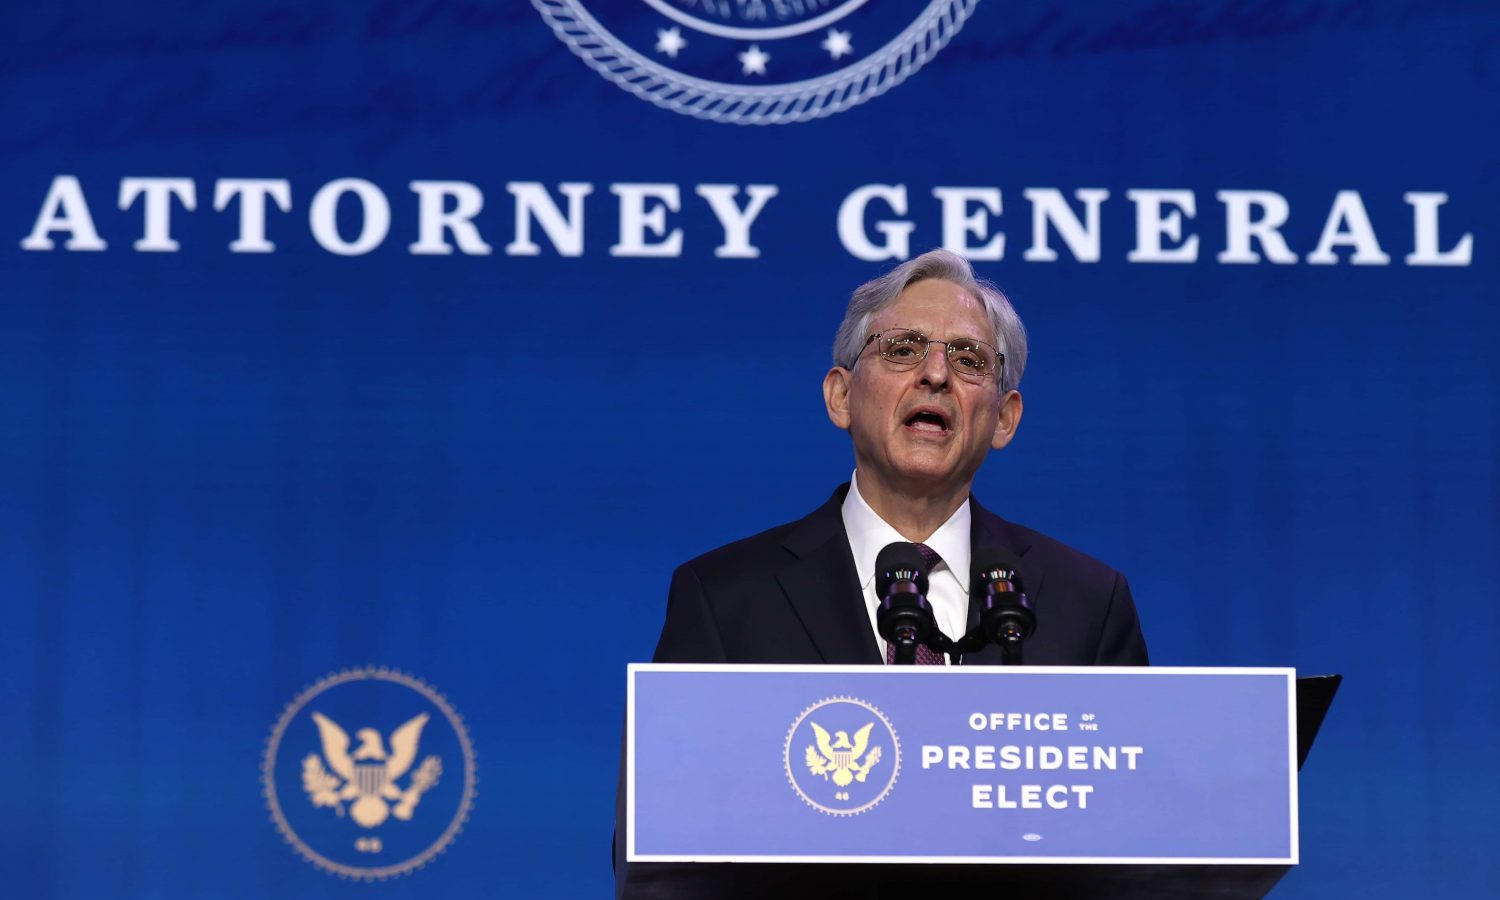 Where Does Biden's Attorney General Stand On Cannabis?